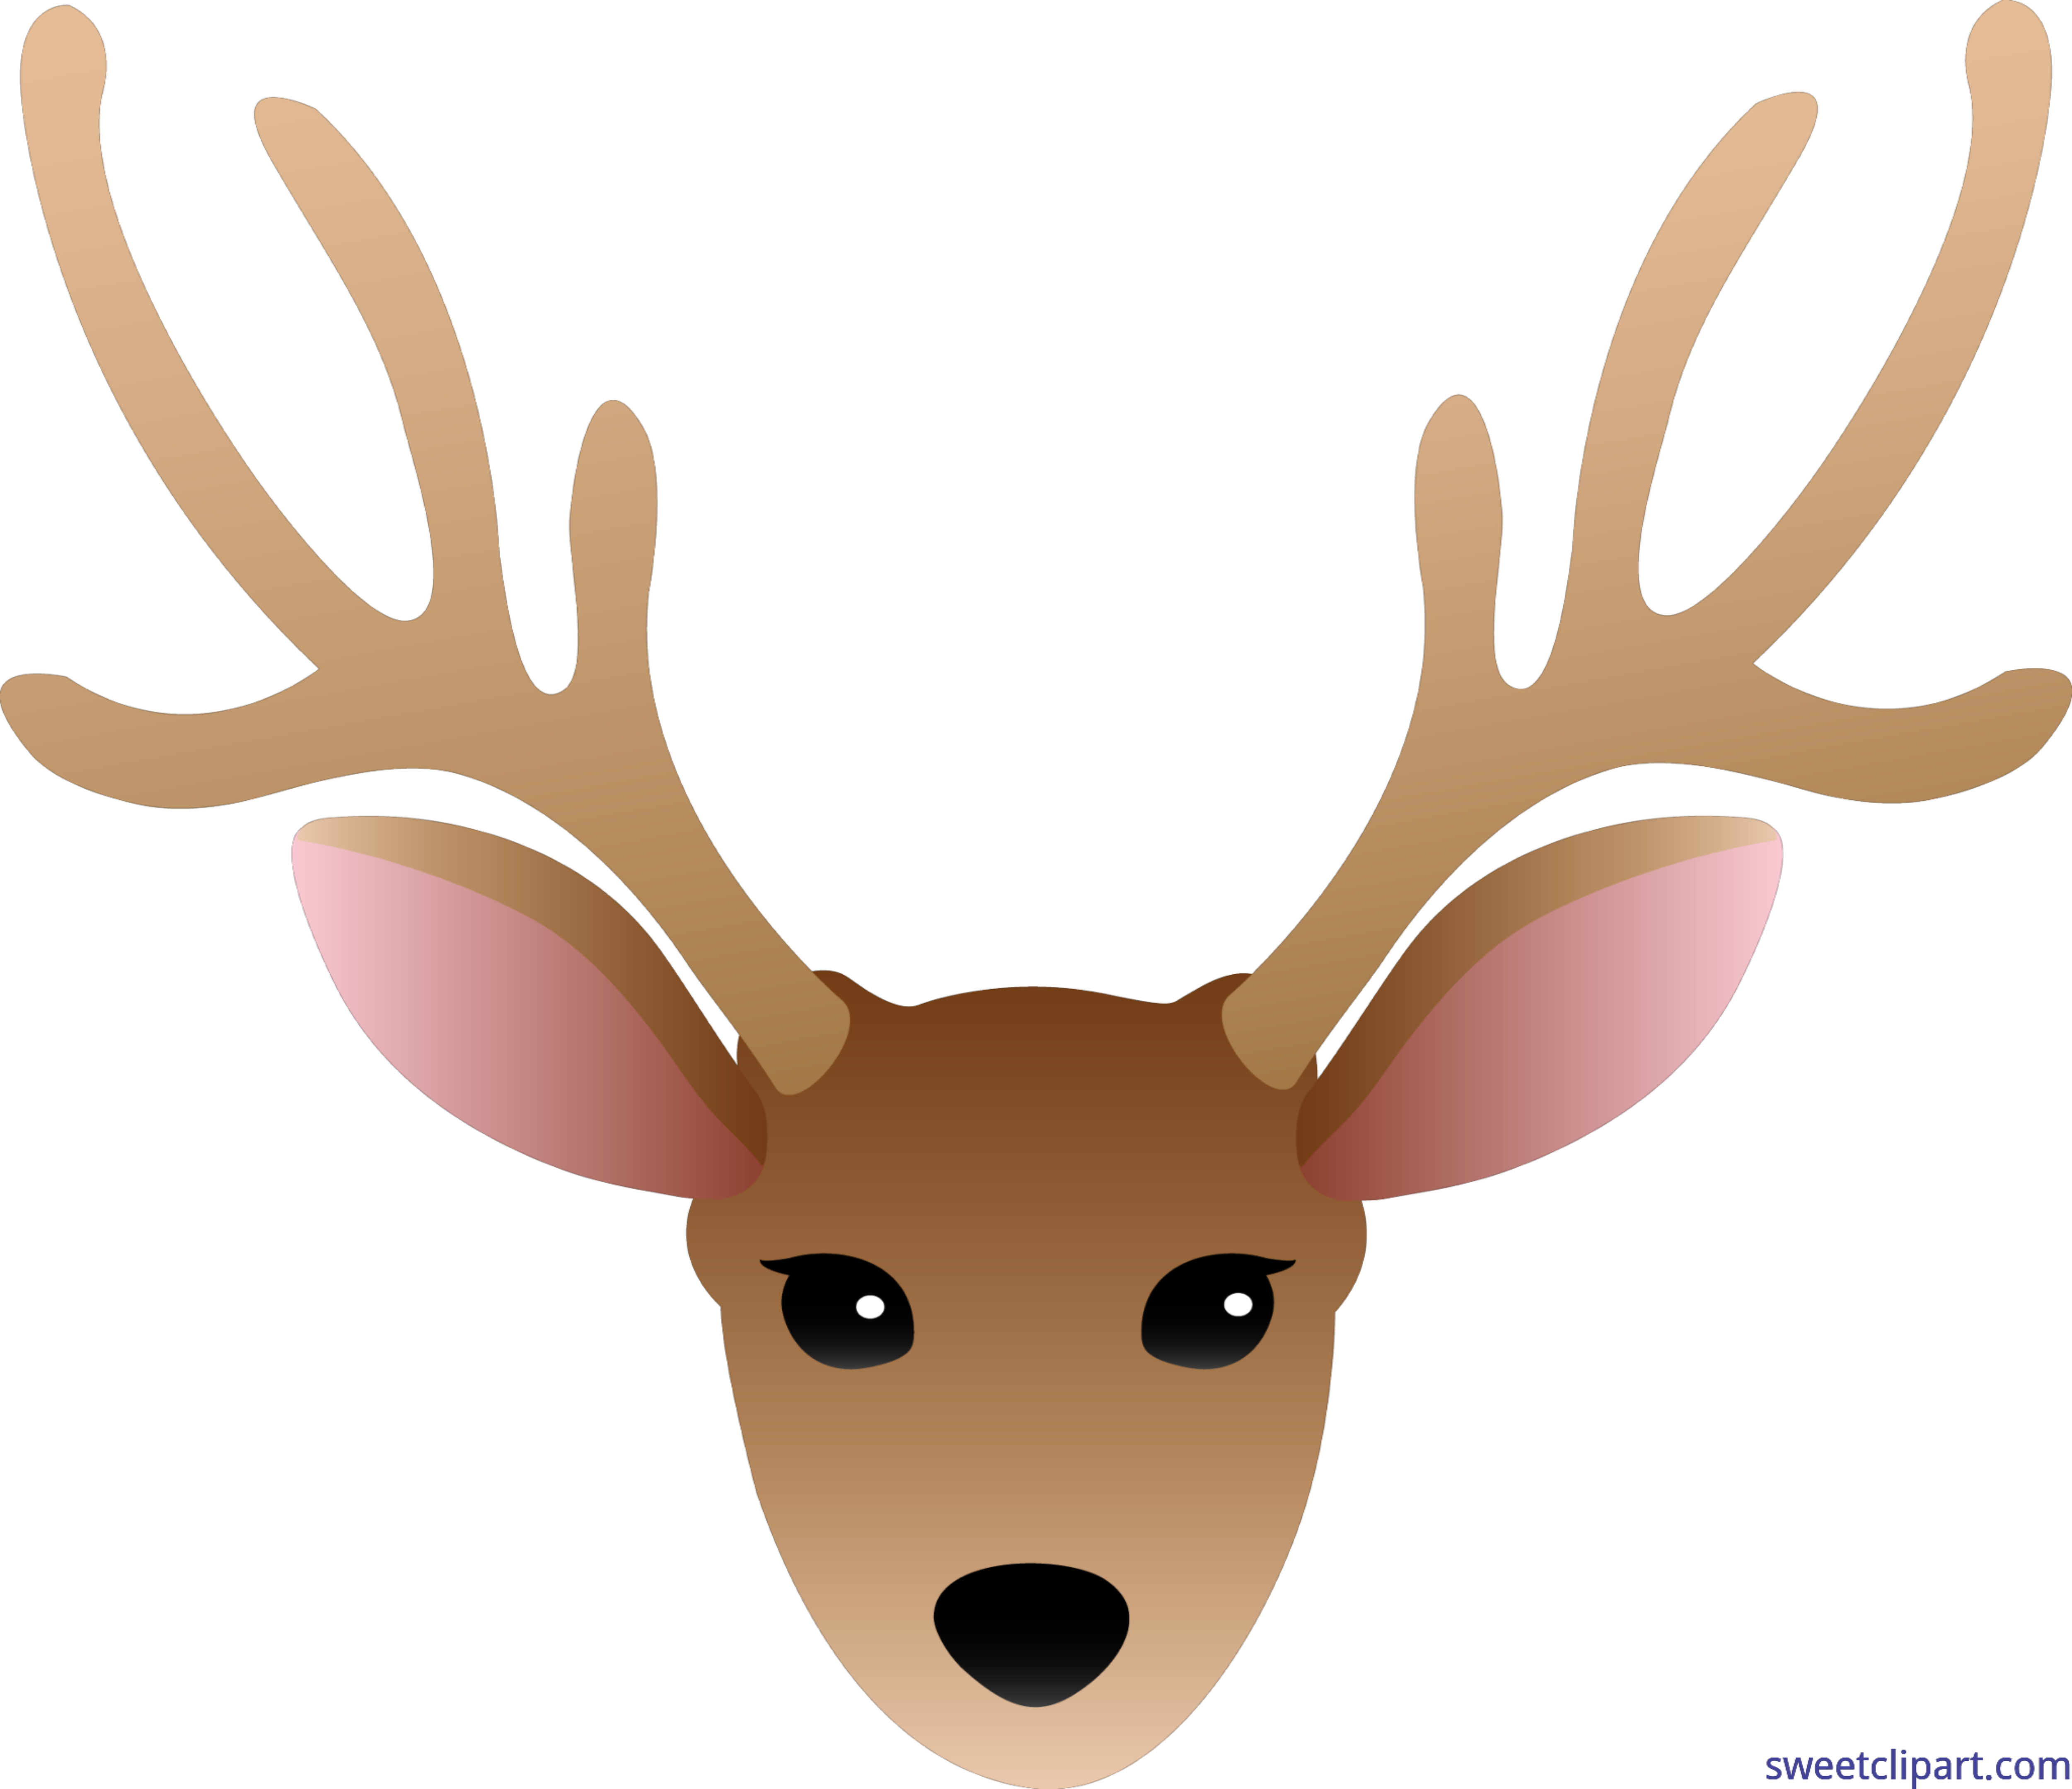 Girly Clipart Deer Girly Deer Transparent Free For Download On Webstockreview 2020